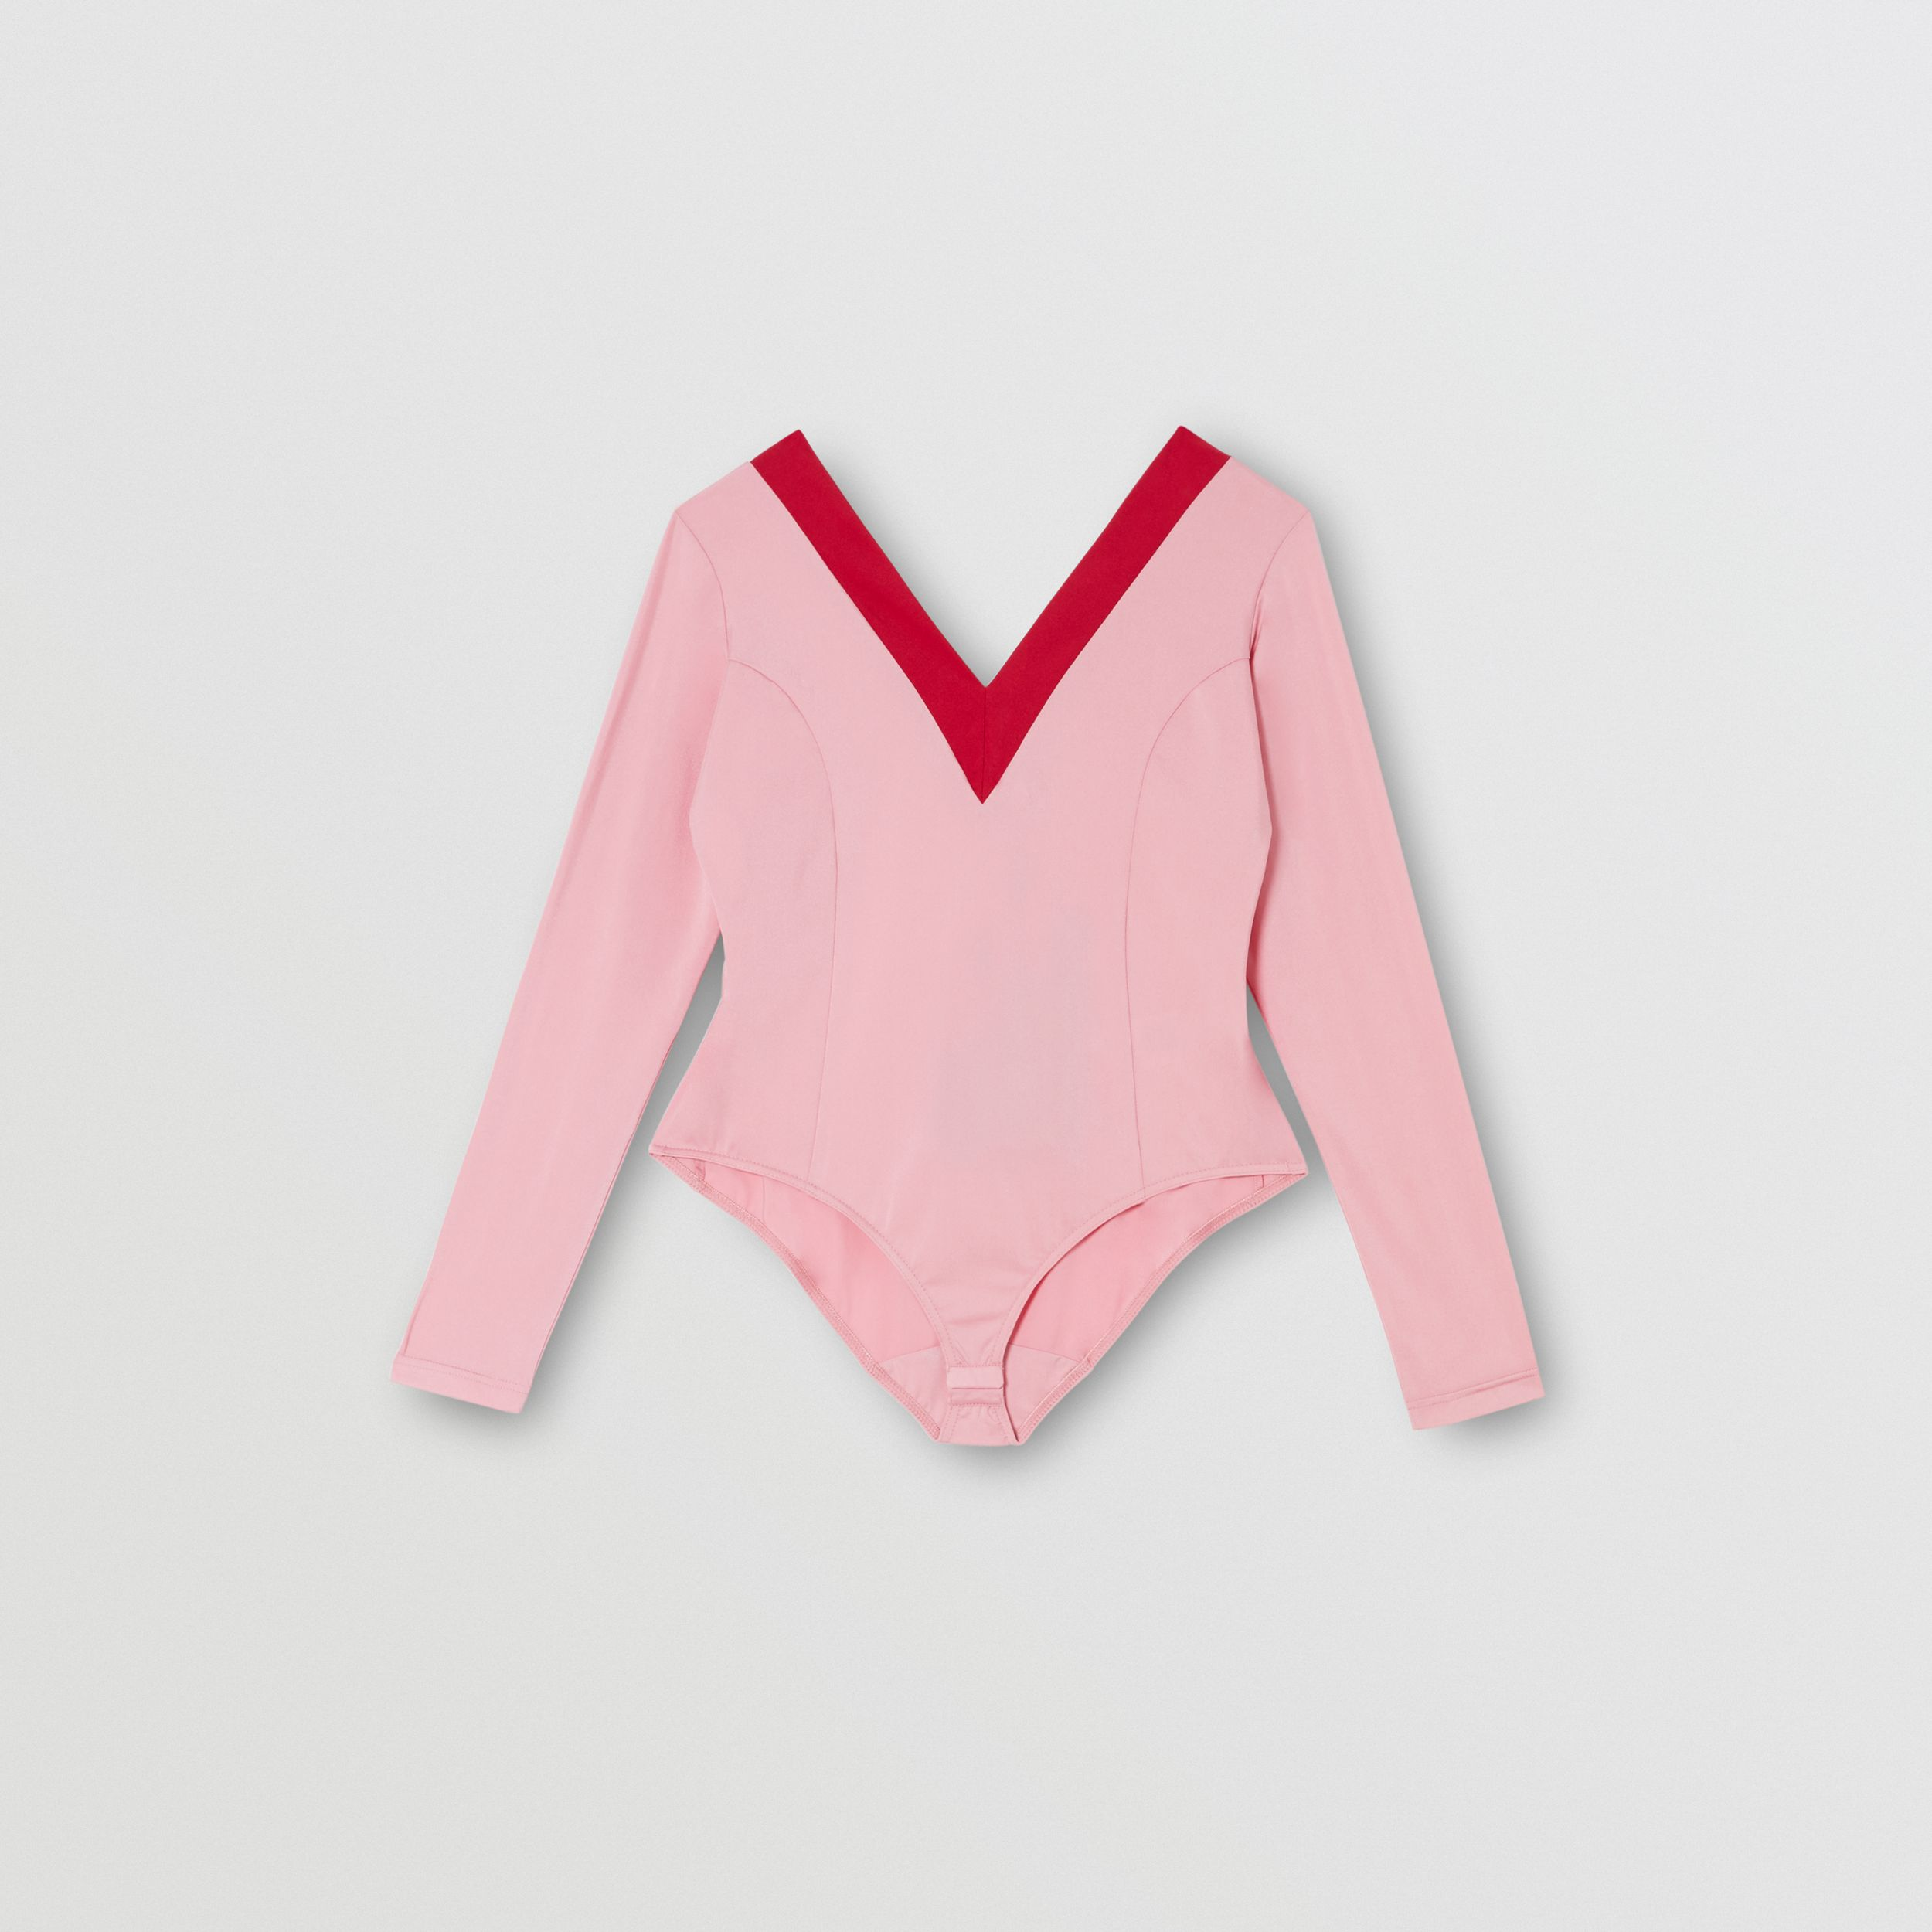 Two-tone Stretch Jersey Bodysuit in Pink - Women | Burberry - 3